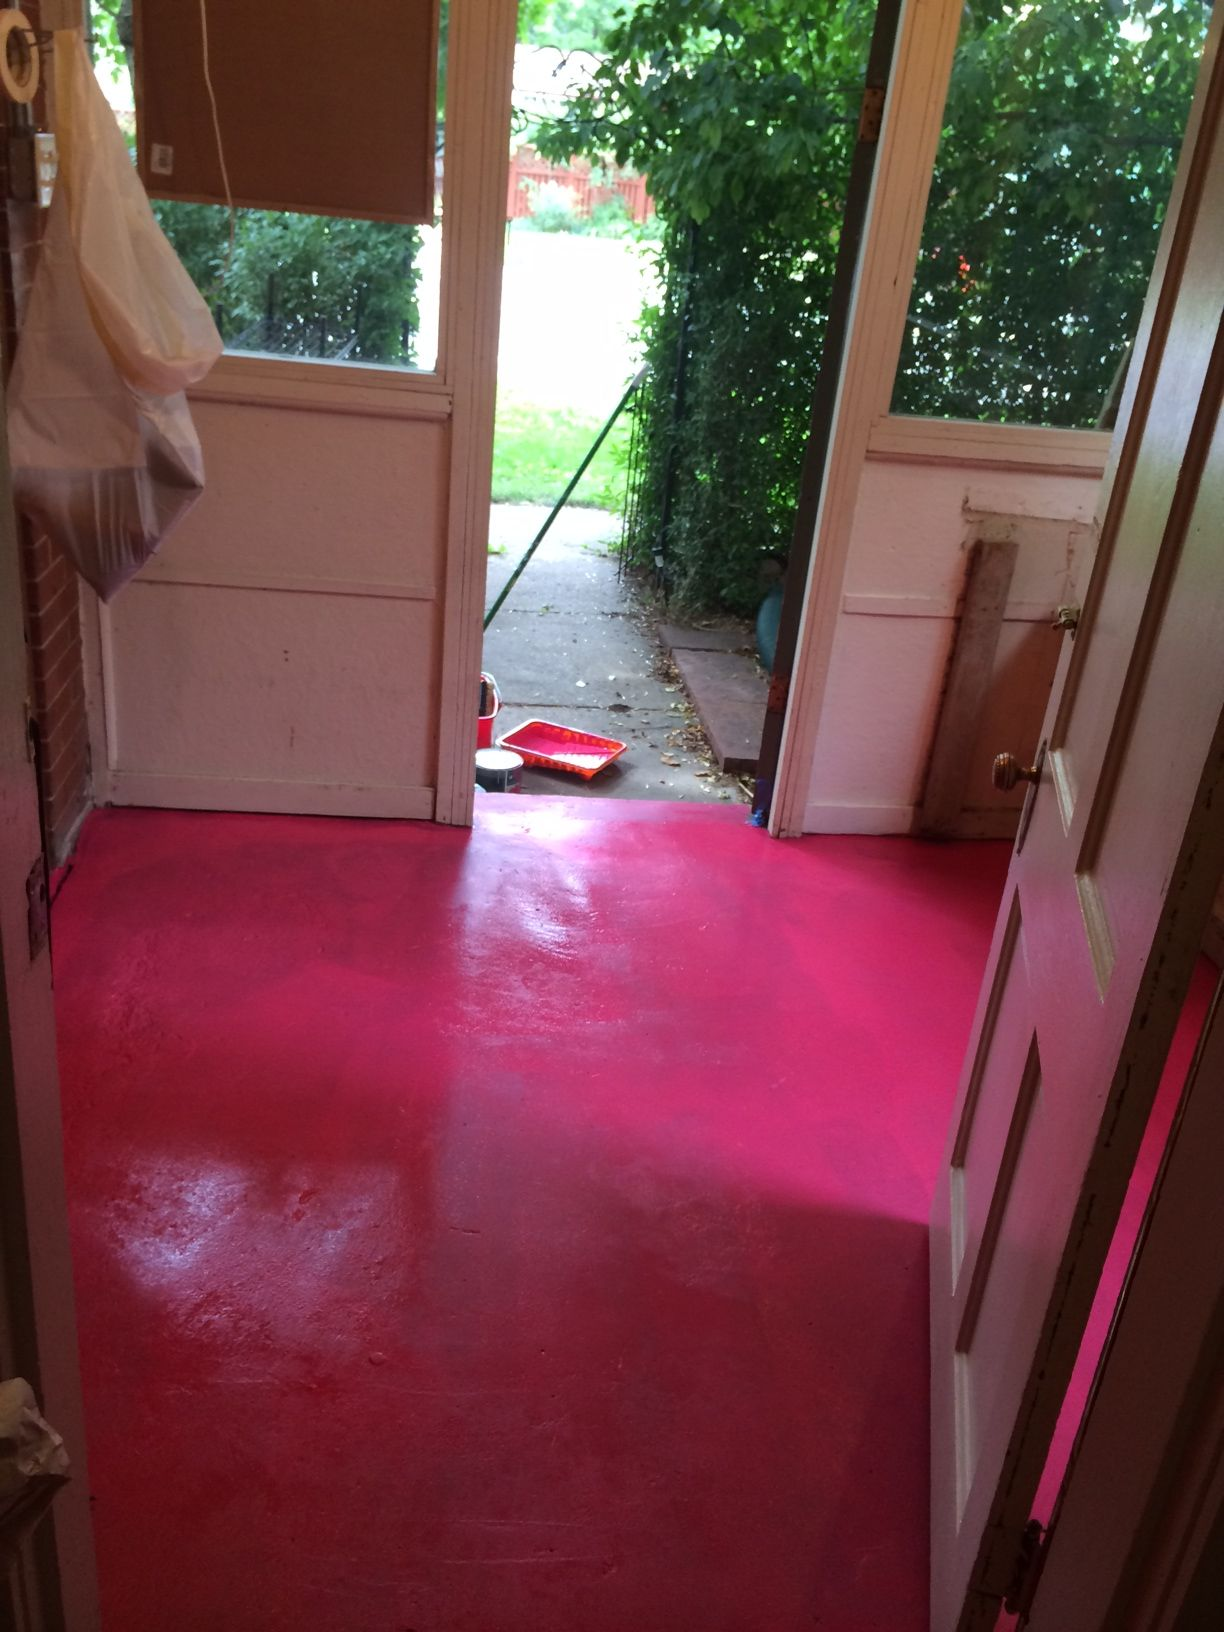 First Coat Of Bright Pink Floor Paint